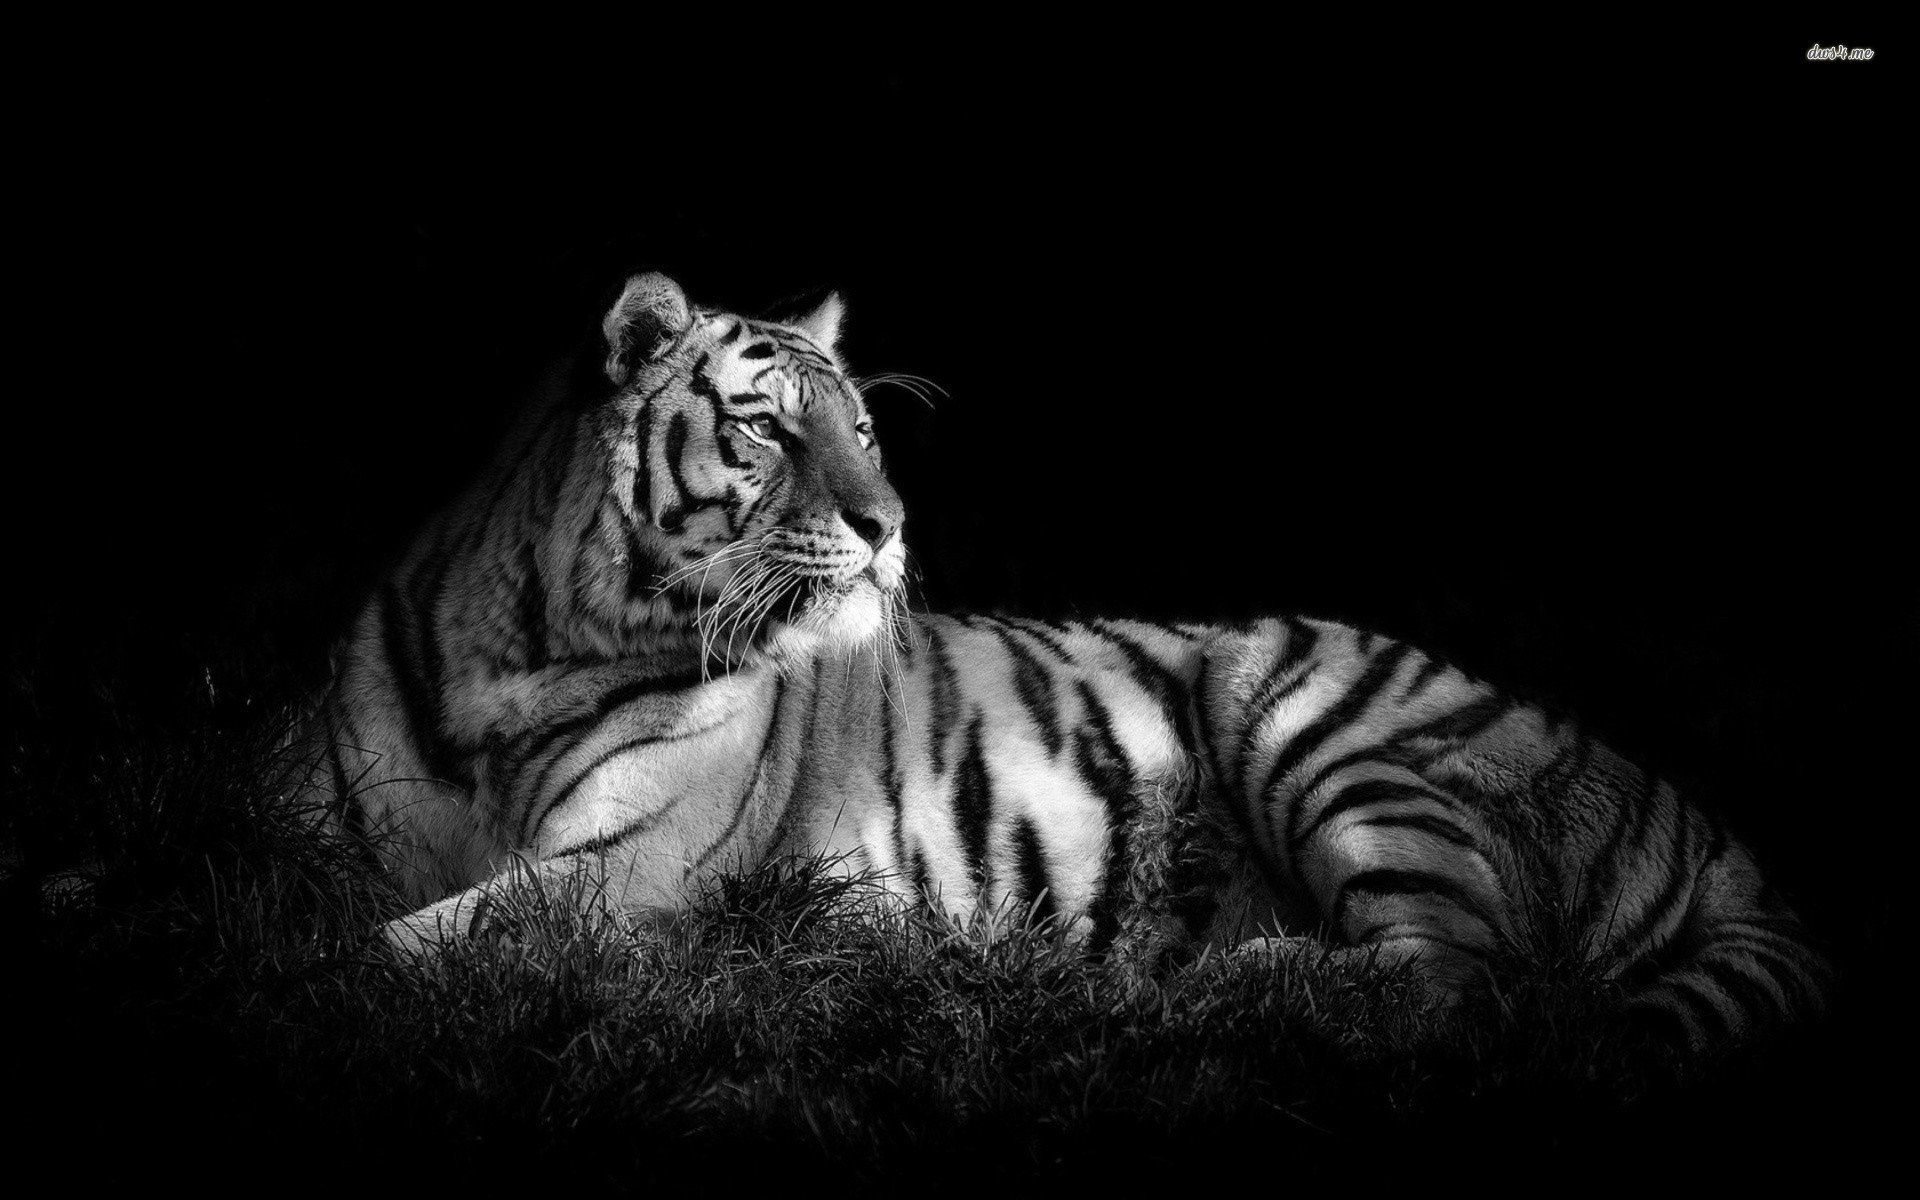 Black and white tiger wallpaper wallpapersafari - Tiger hd wallpaper for pc ...